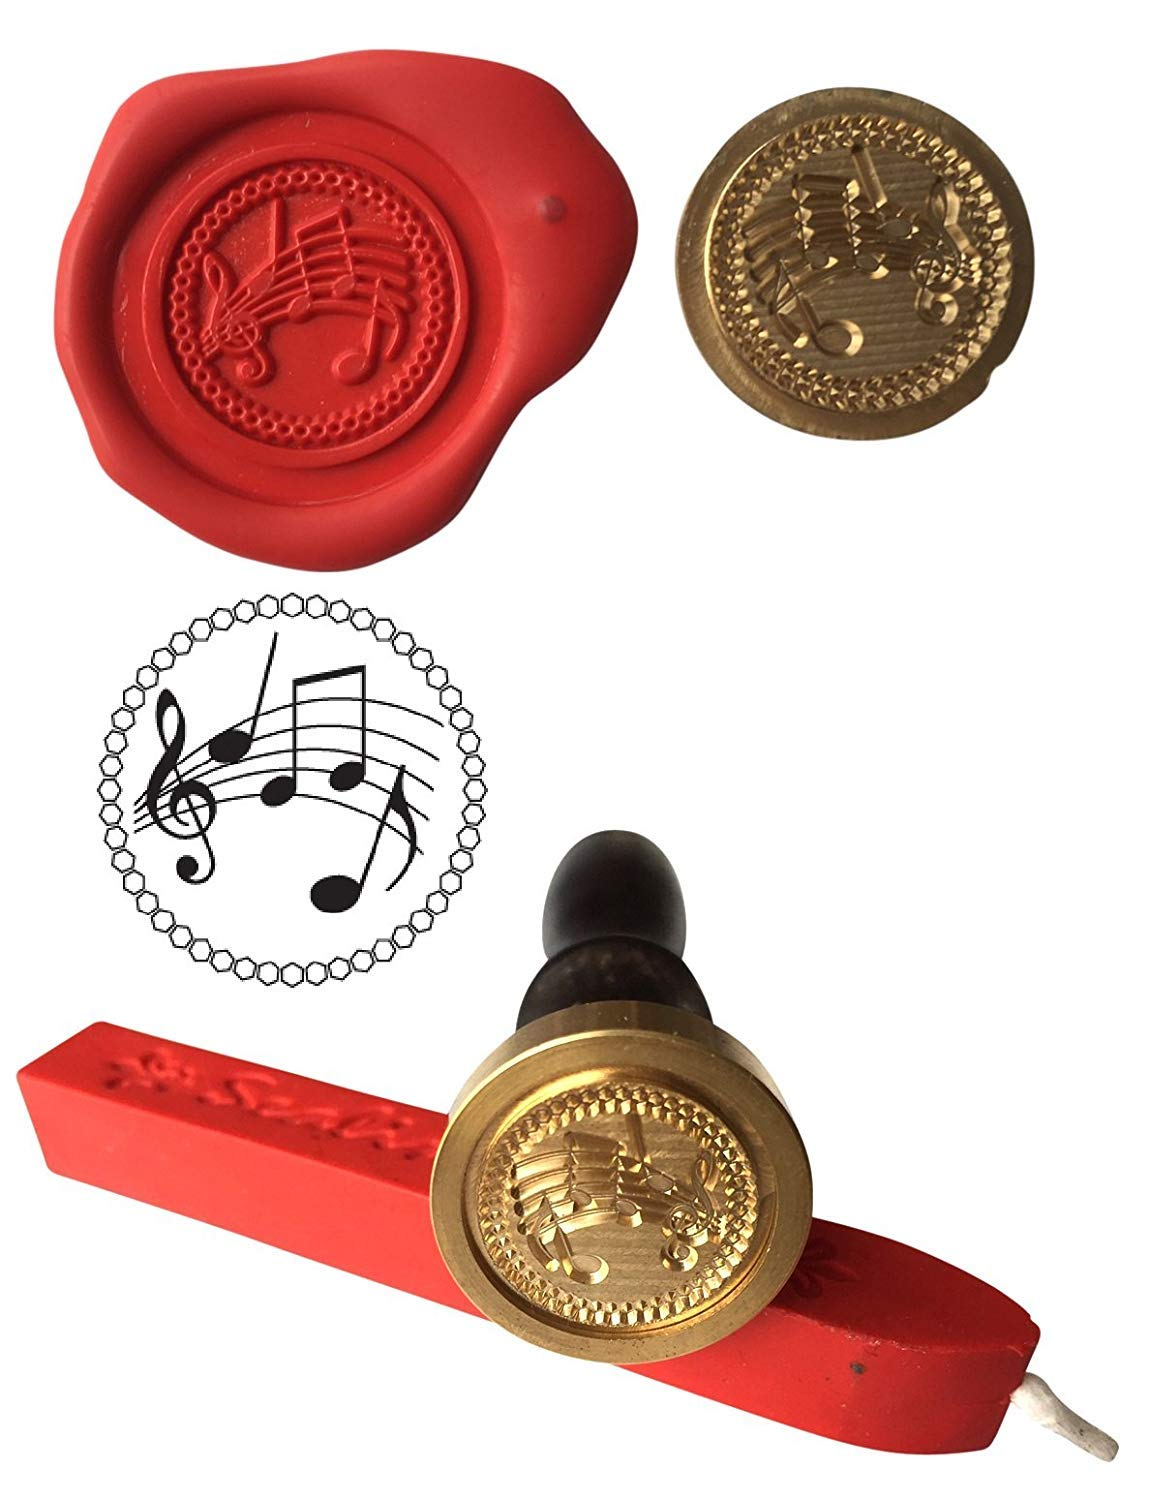 Wax Stamp, MUSIC SHEET Music Drama Seal and Red Wax Stick XWSC234-KIT (S14) GTR-Gifts